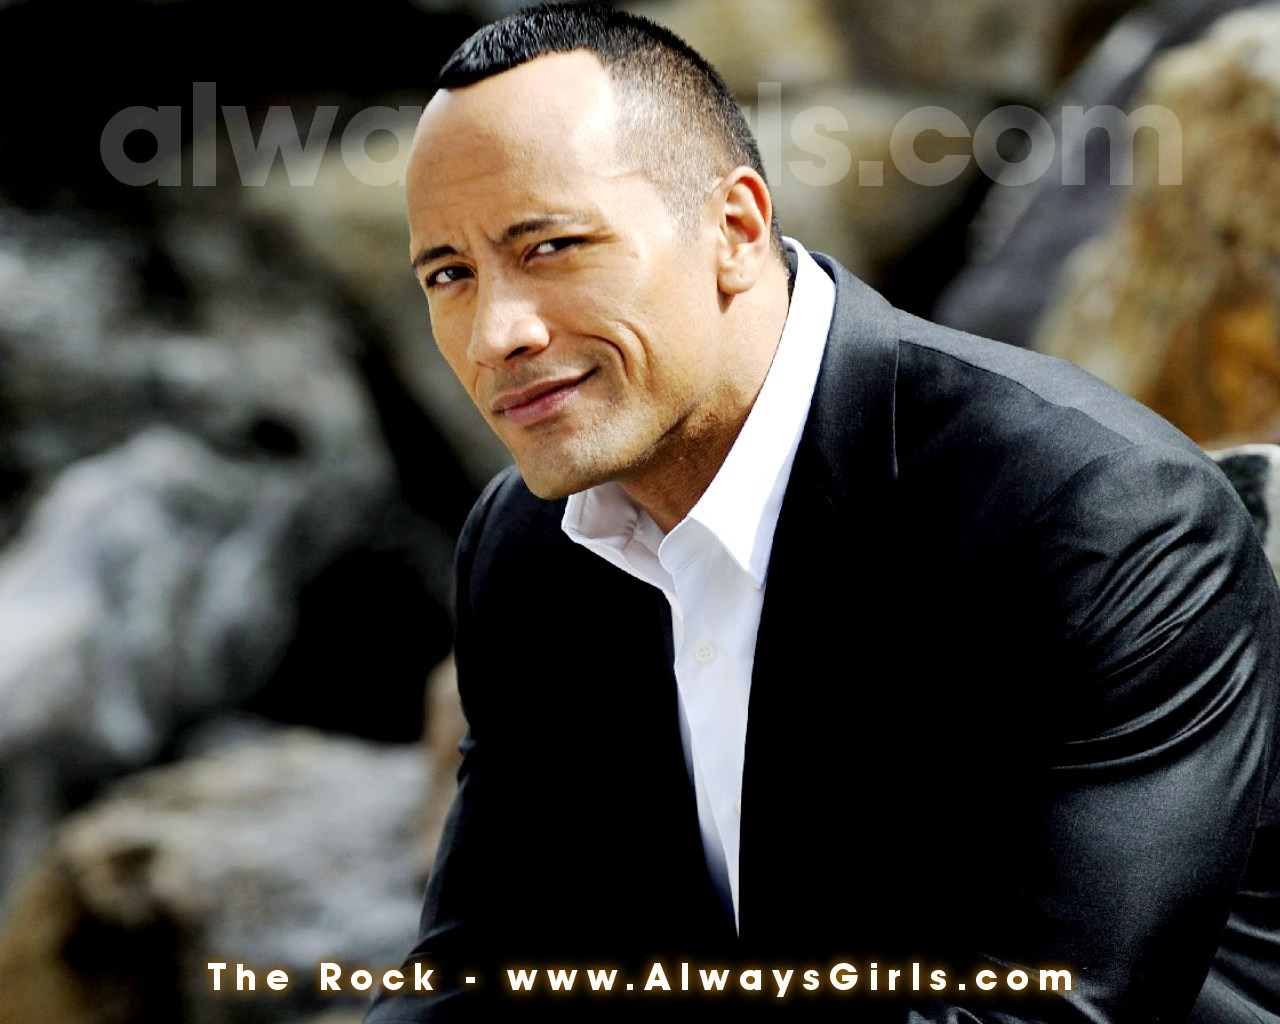 celebrities dwayne johnson. Black Bedroom Furniture Sets. Home Design Ideas